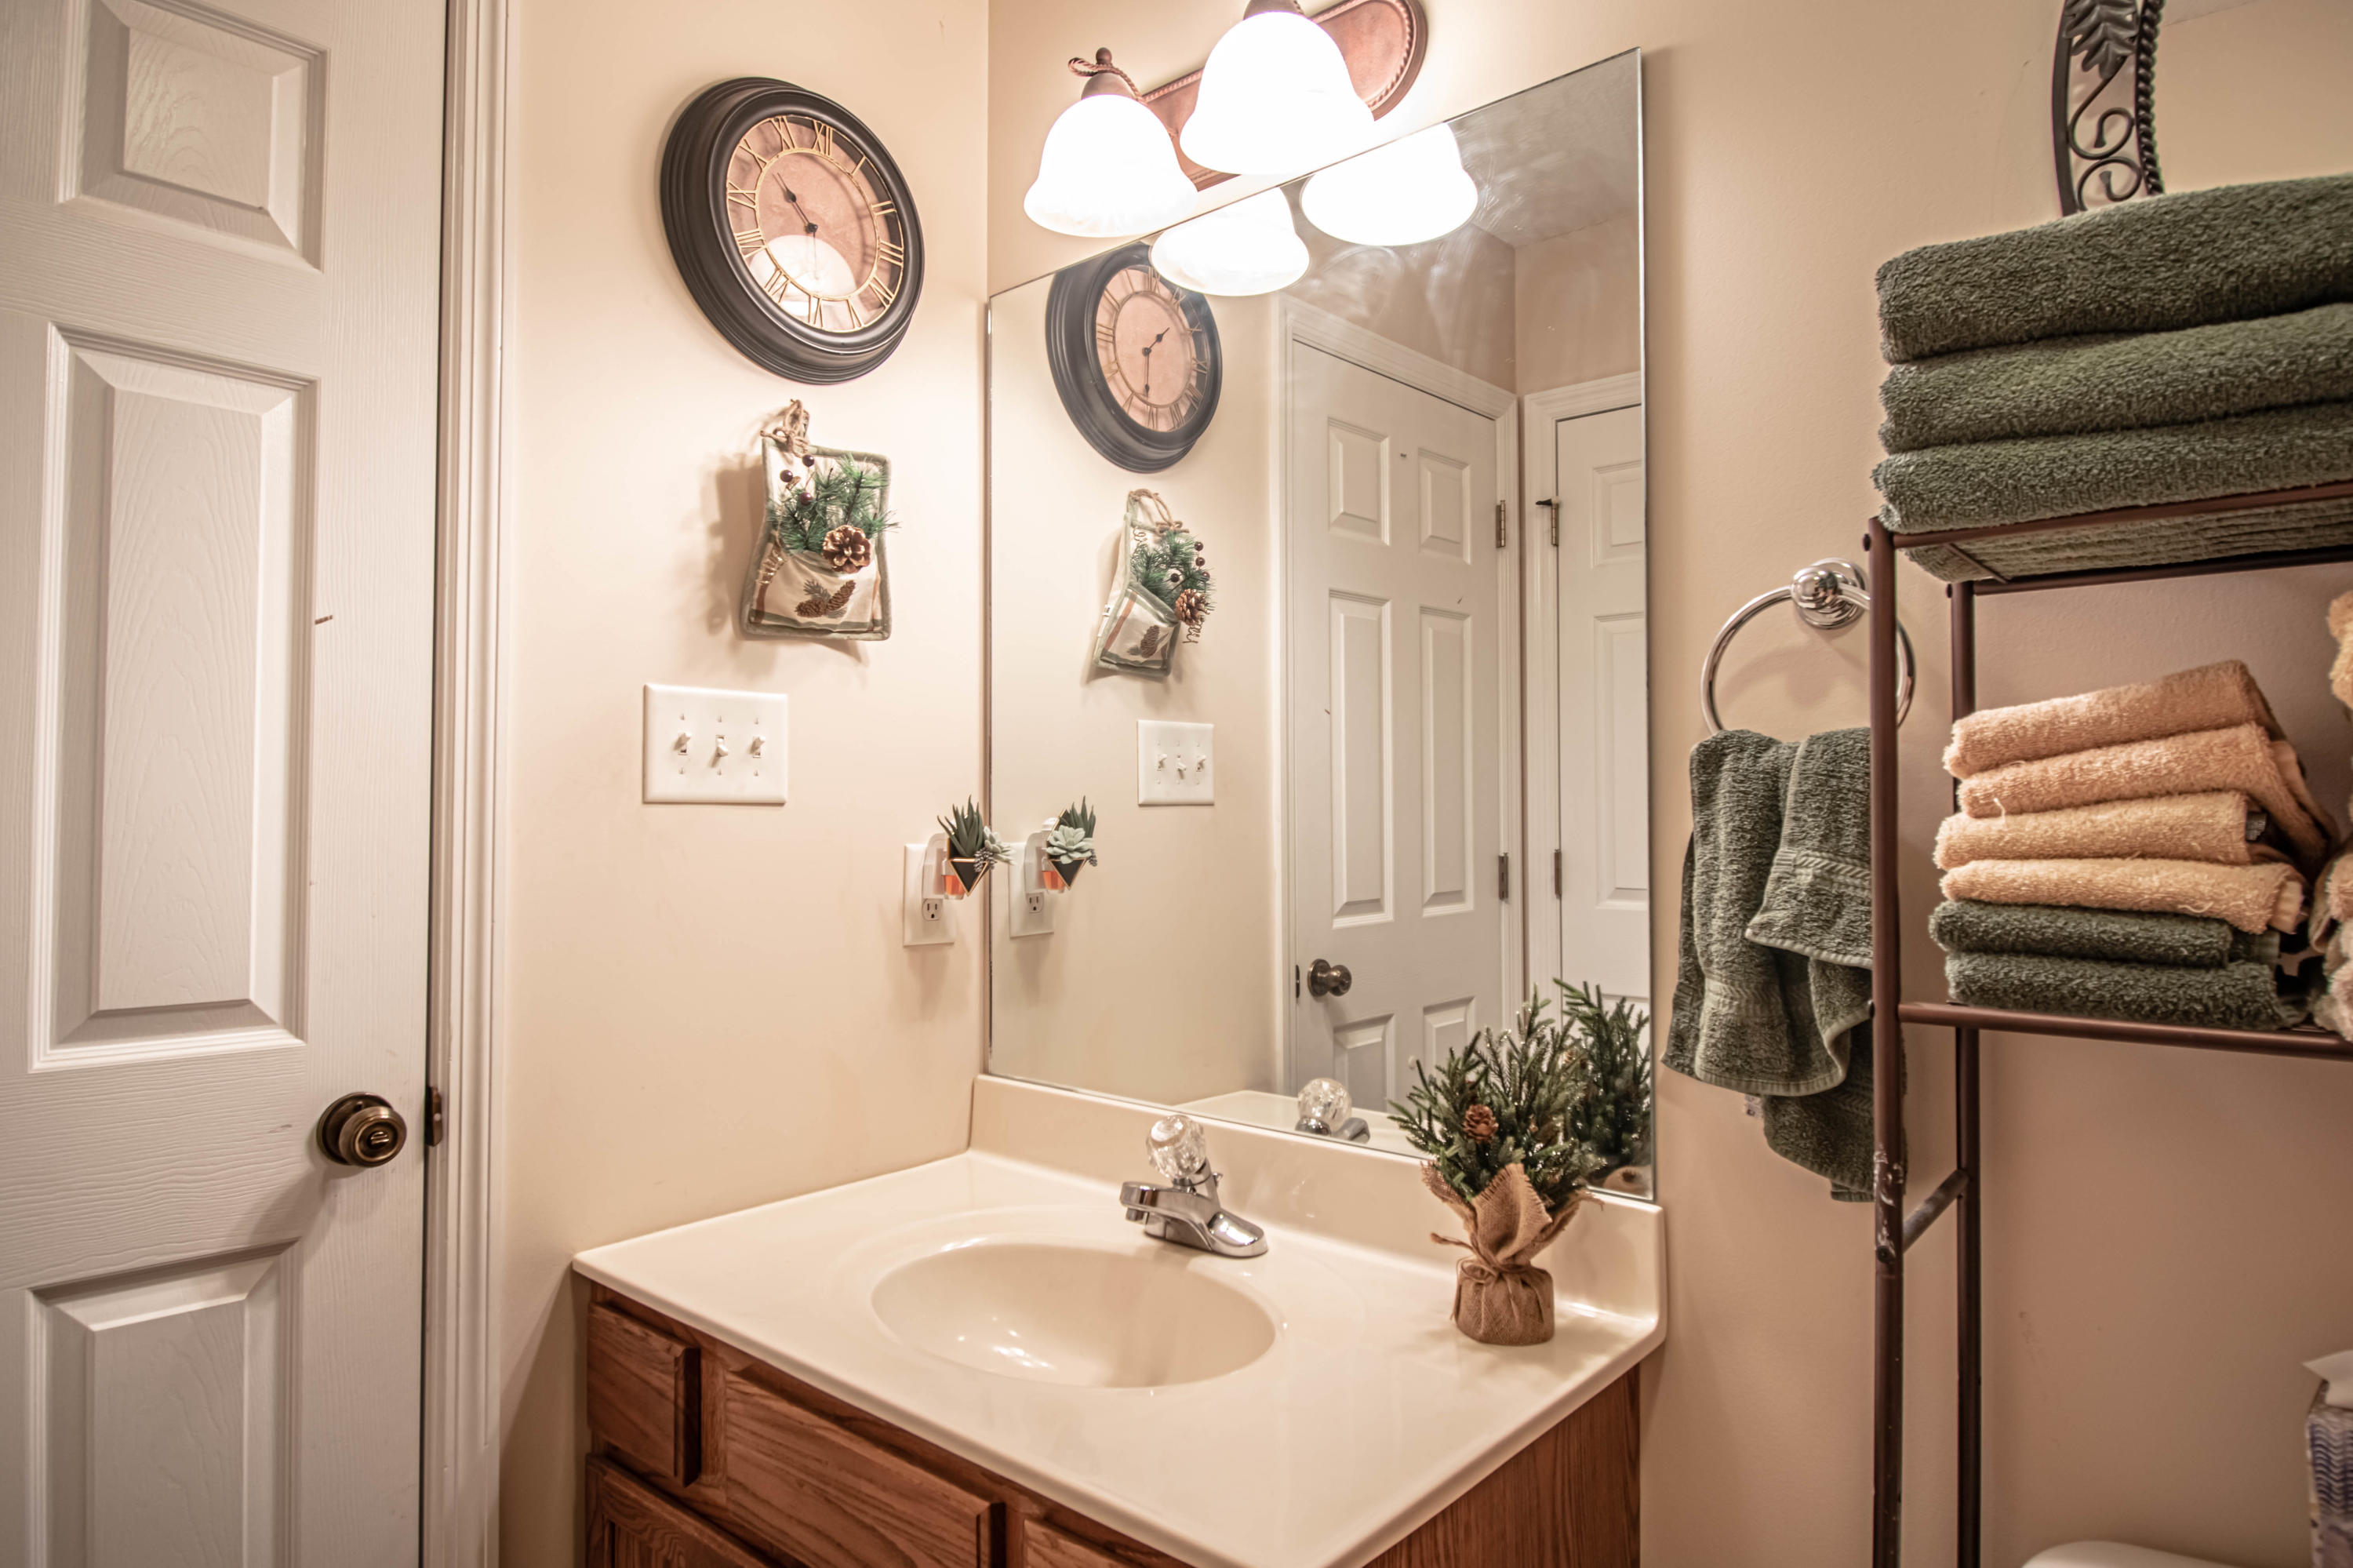 217 Montalee, Knoxville, Tennessee, United States 37924, 2 Bedrooms Bedrooms, ,2 BathroomsBathrooms,Single Family,For Sale,Montalee,1114632